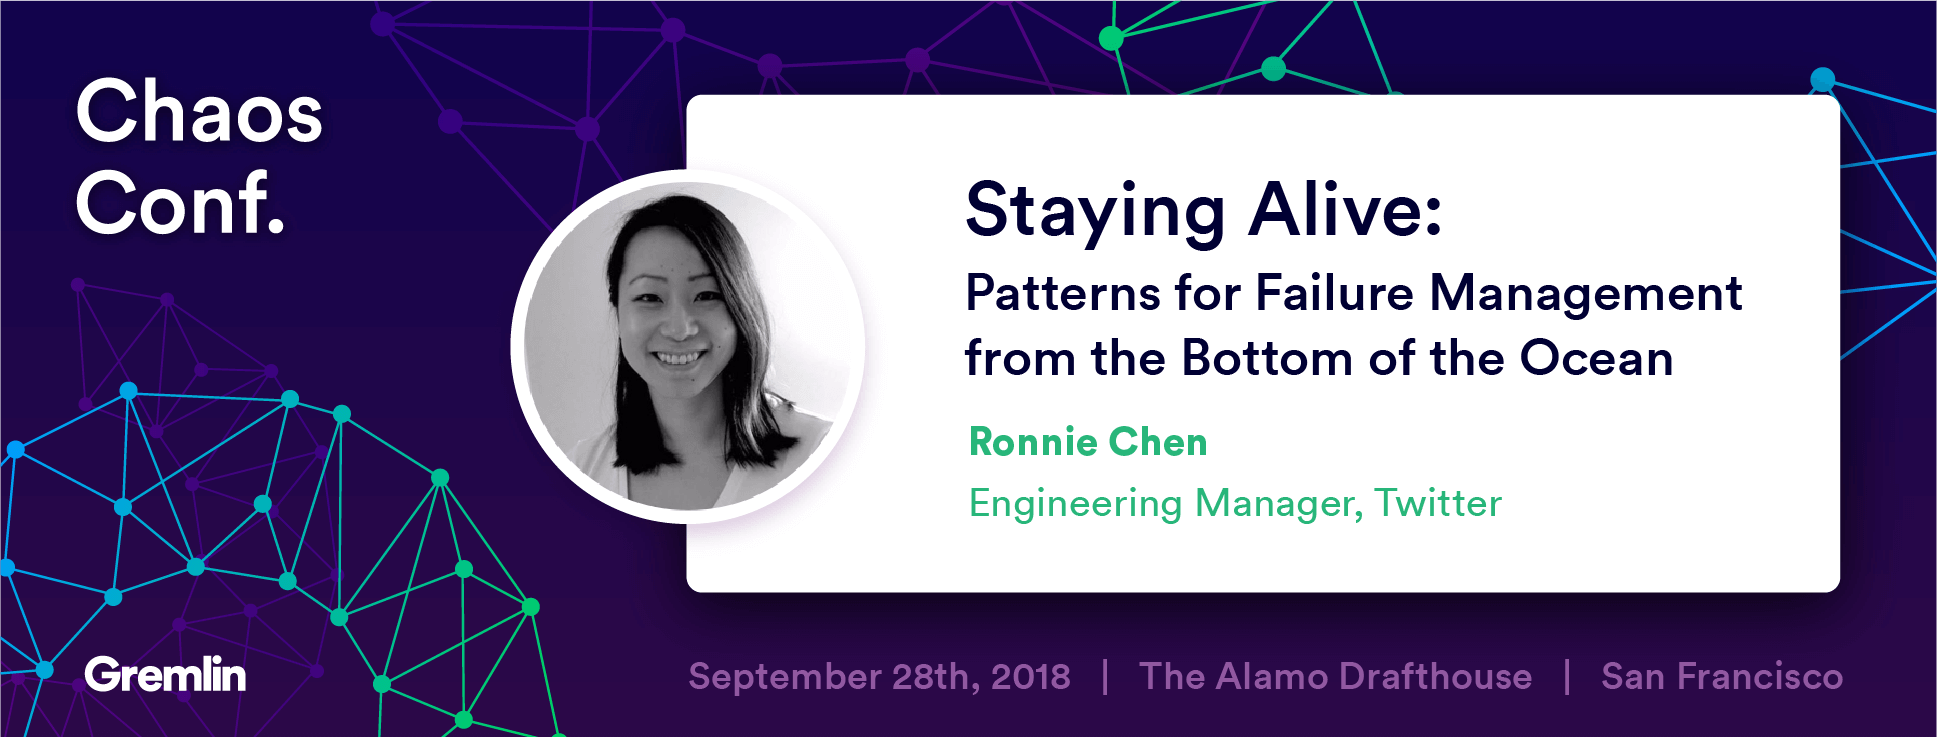 "Ronnie Chen: ""Staying Alive: Patterns for Failure Management from the Depths"" - Chaos Conf 2018"